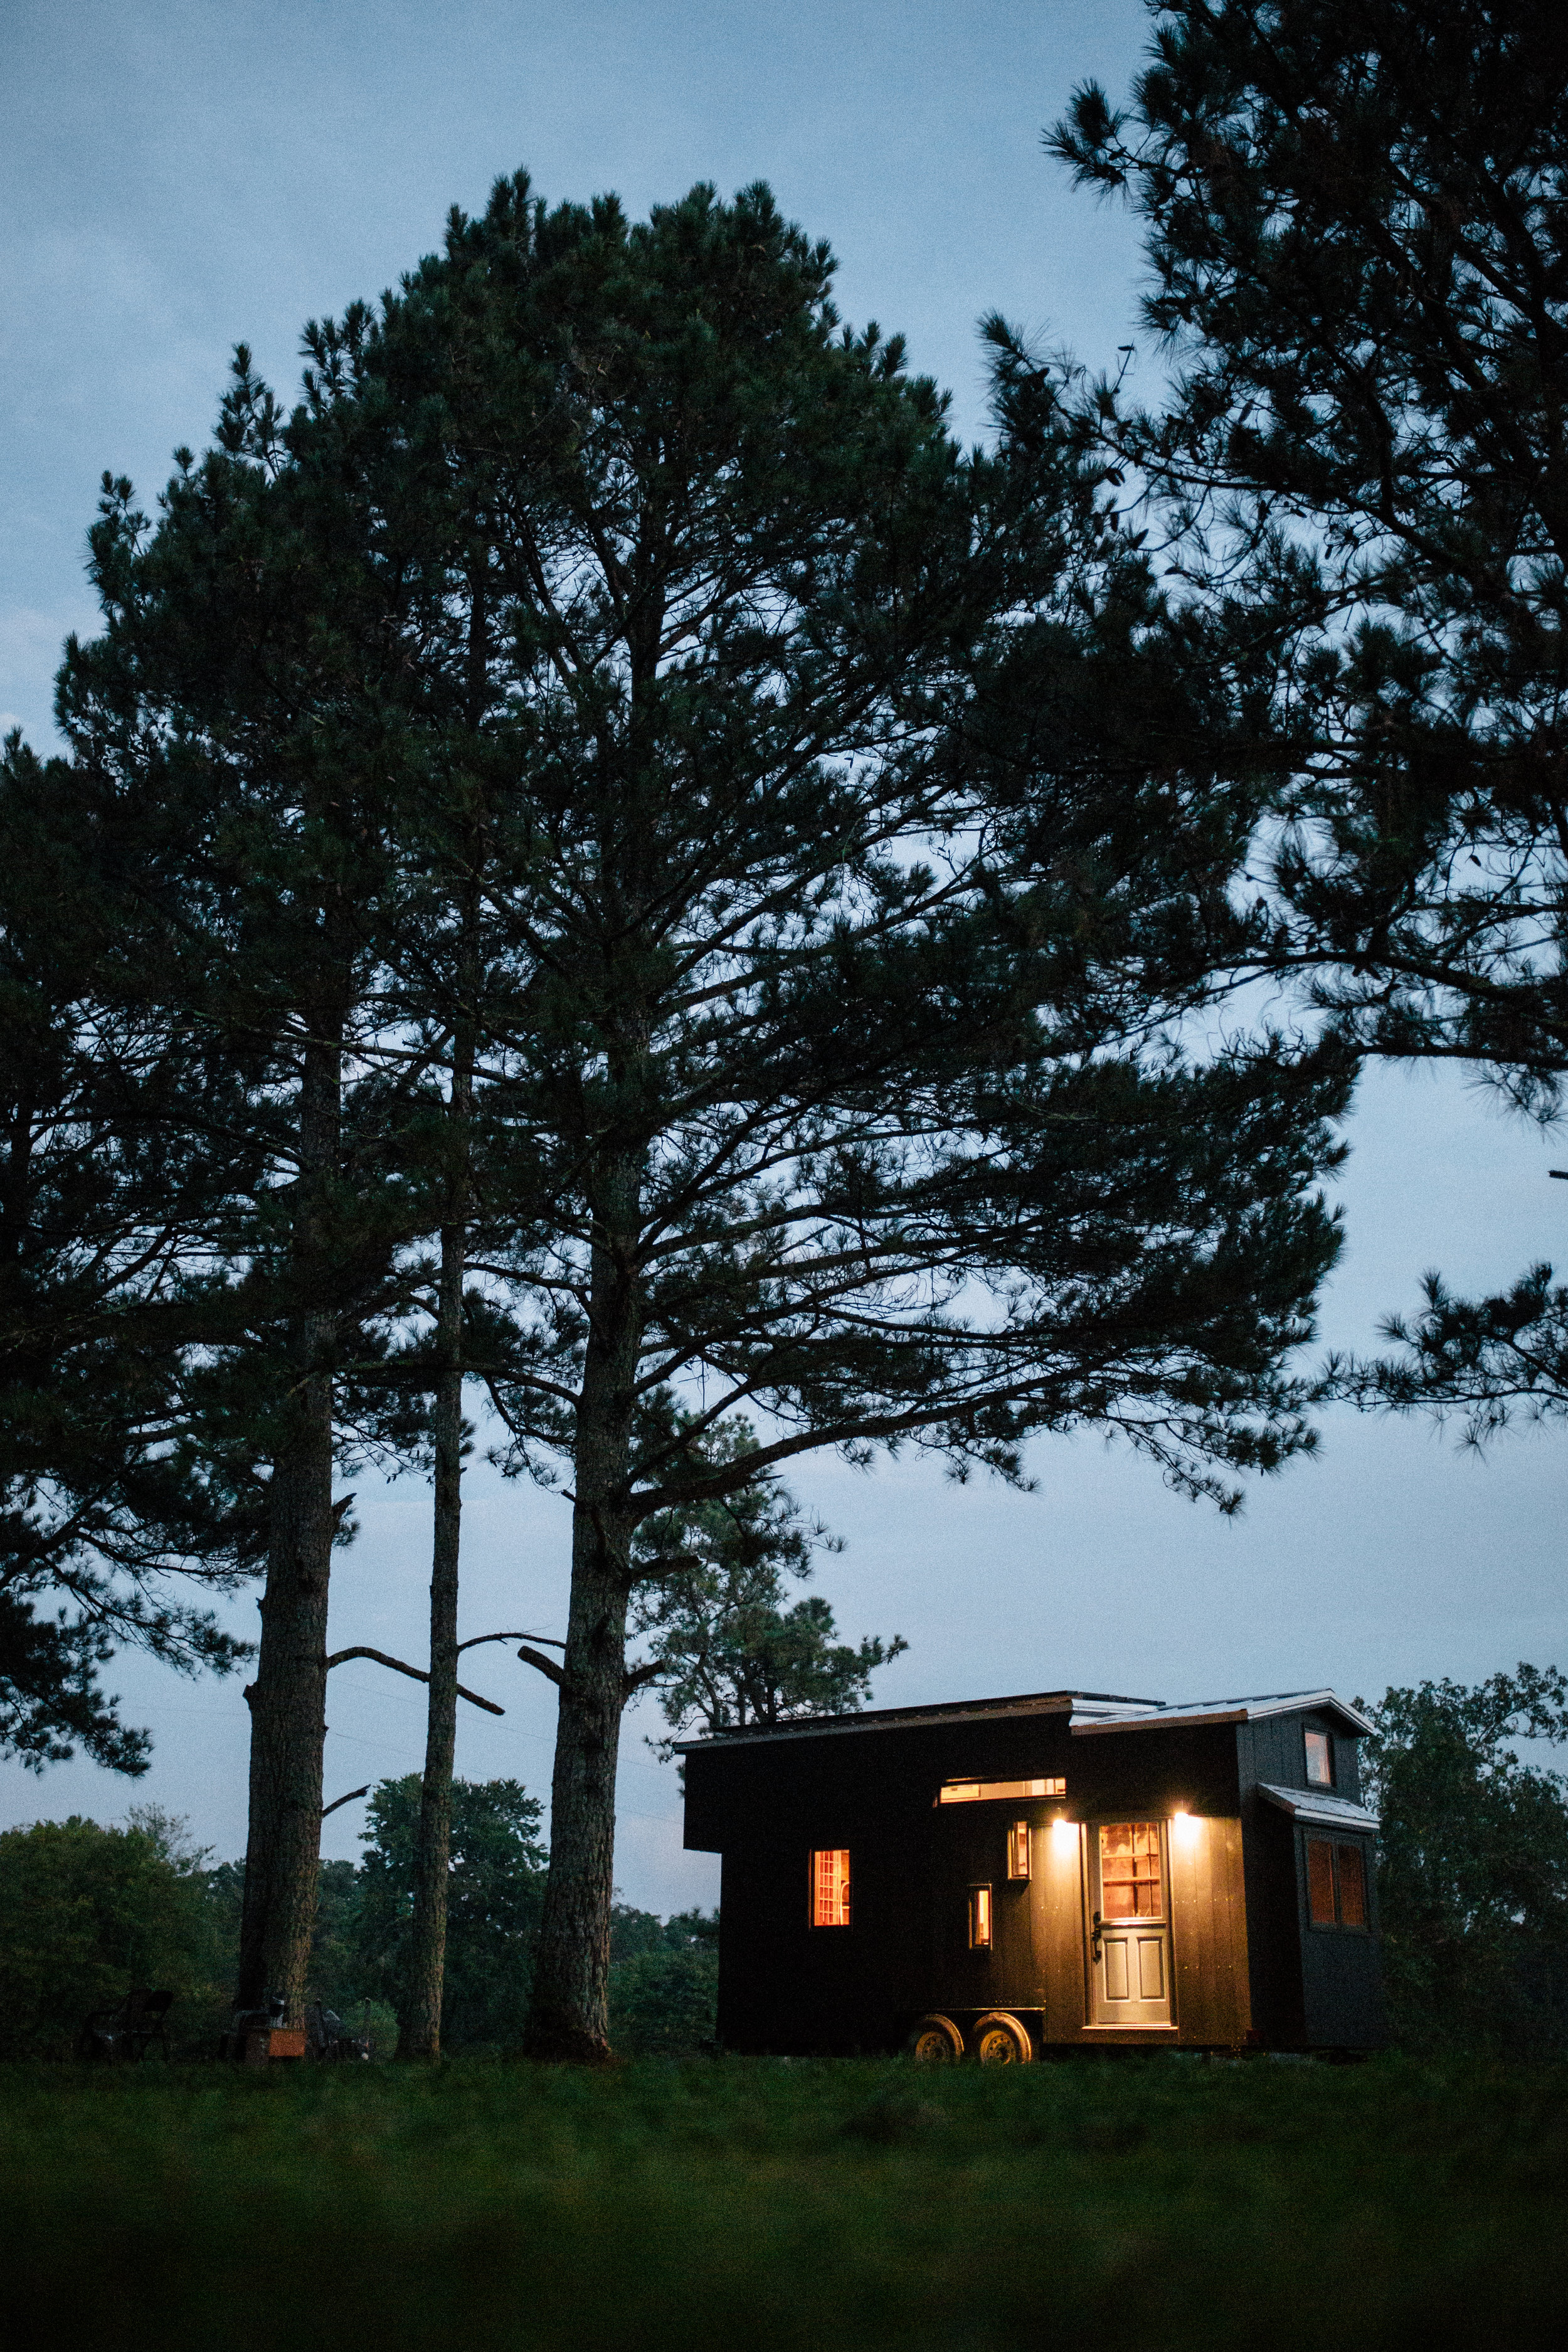 The Rook by Wind River Tiny Homes - Painted vertical siding with exposed stainless screws and custom roofline.